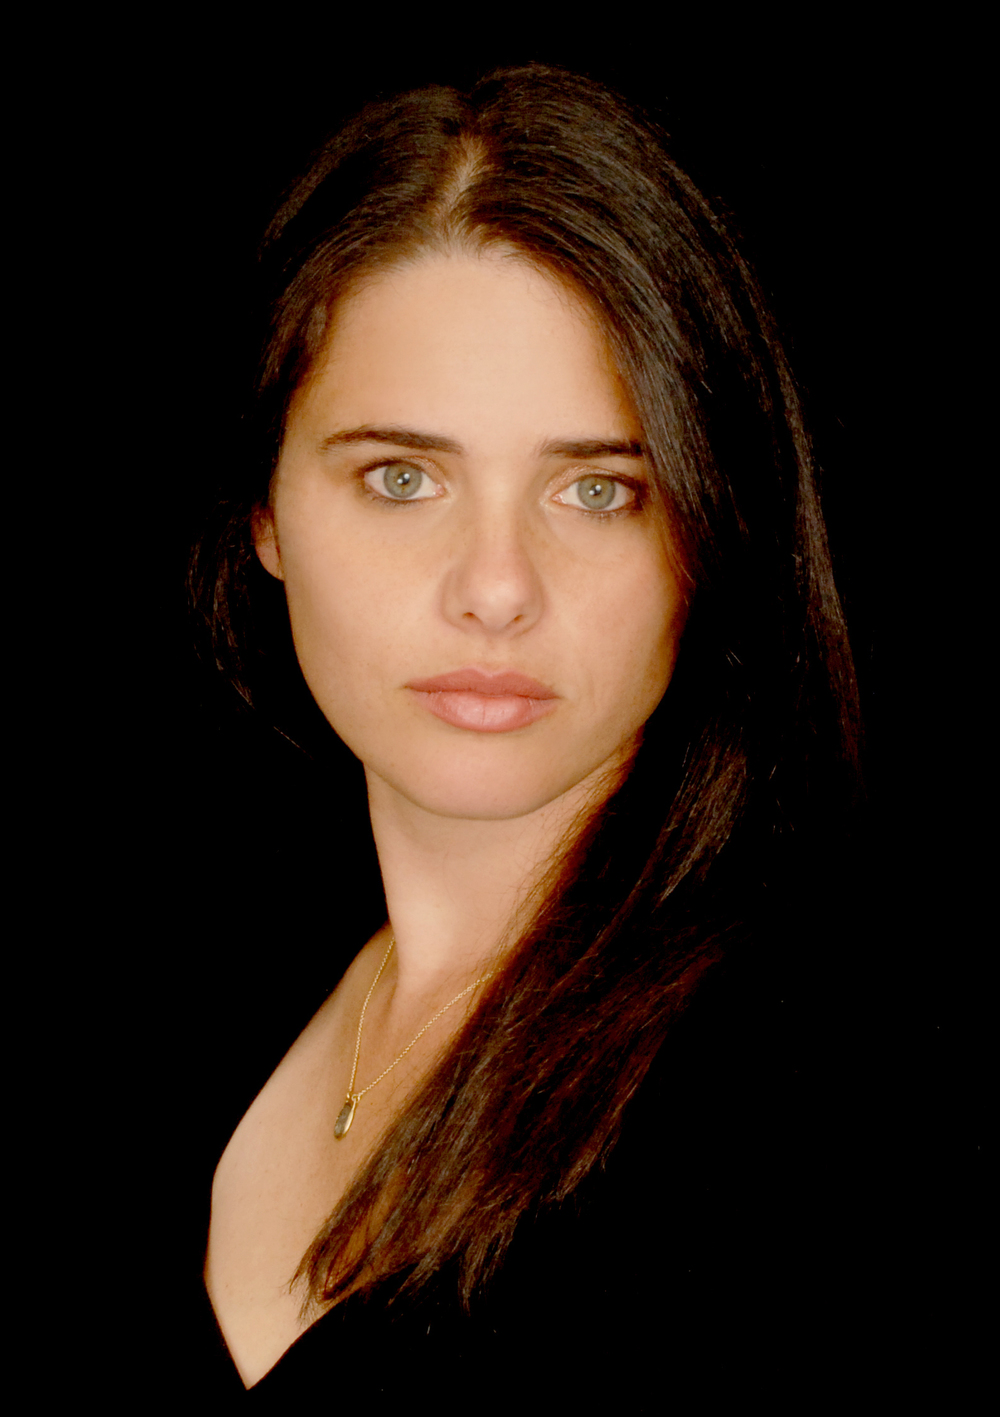 Israeli Justice Minister Ayelet Shaked, sponsor of the Knesset's NGO bill. Credit: Wikimedia Commons.